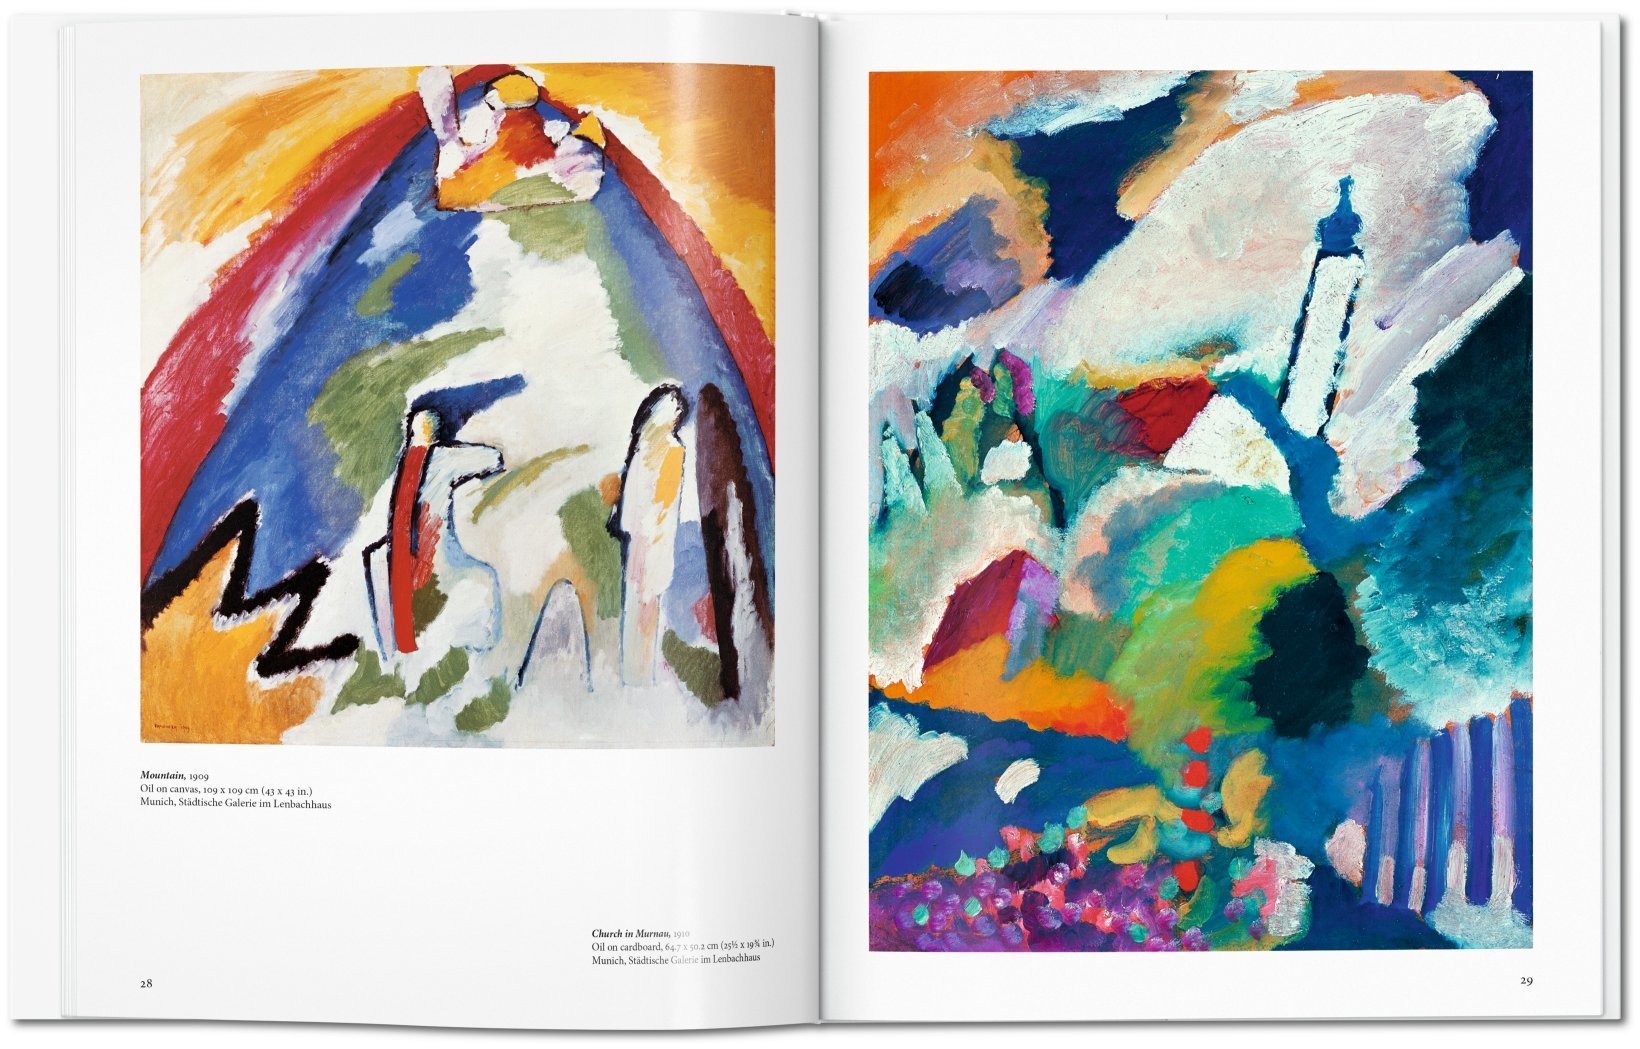 Wassily Kandinsky and his paintings